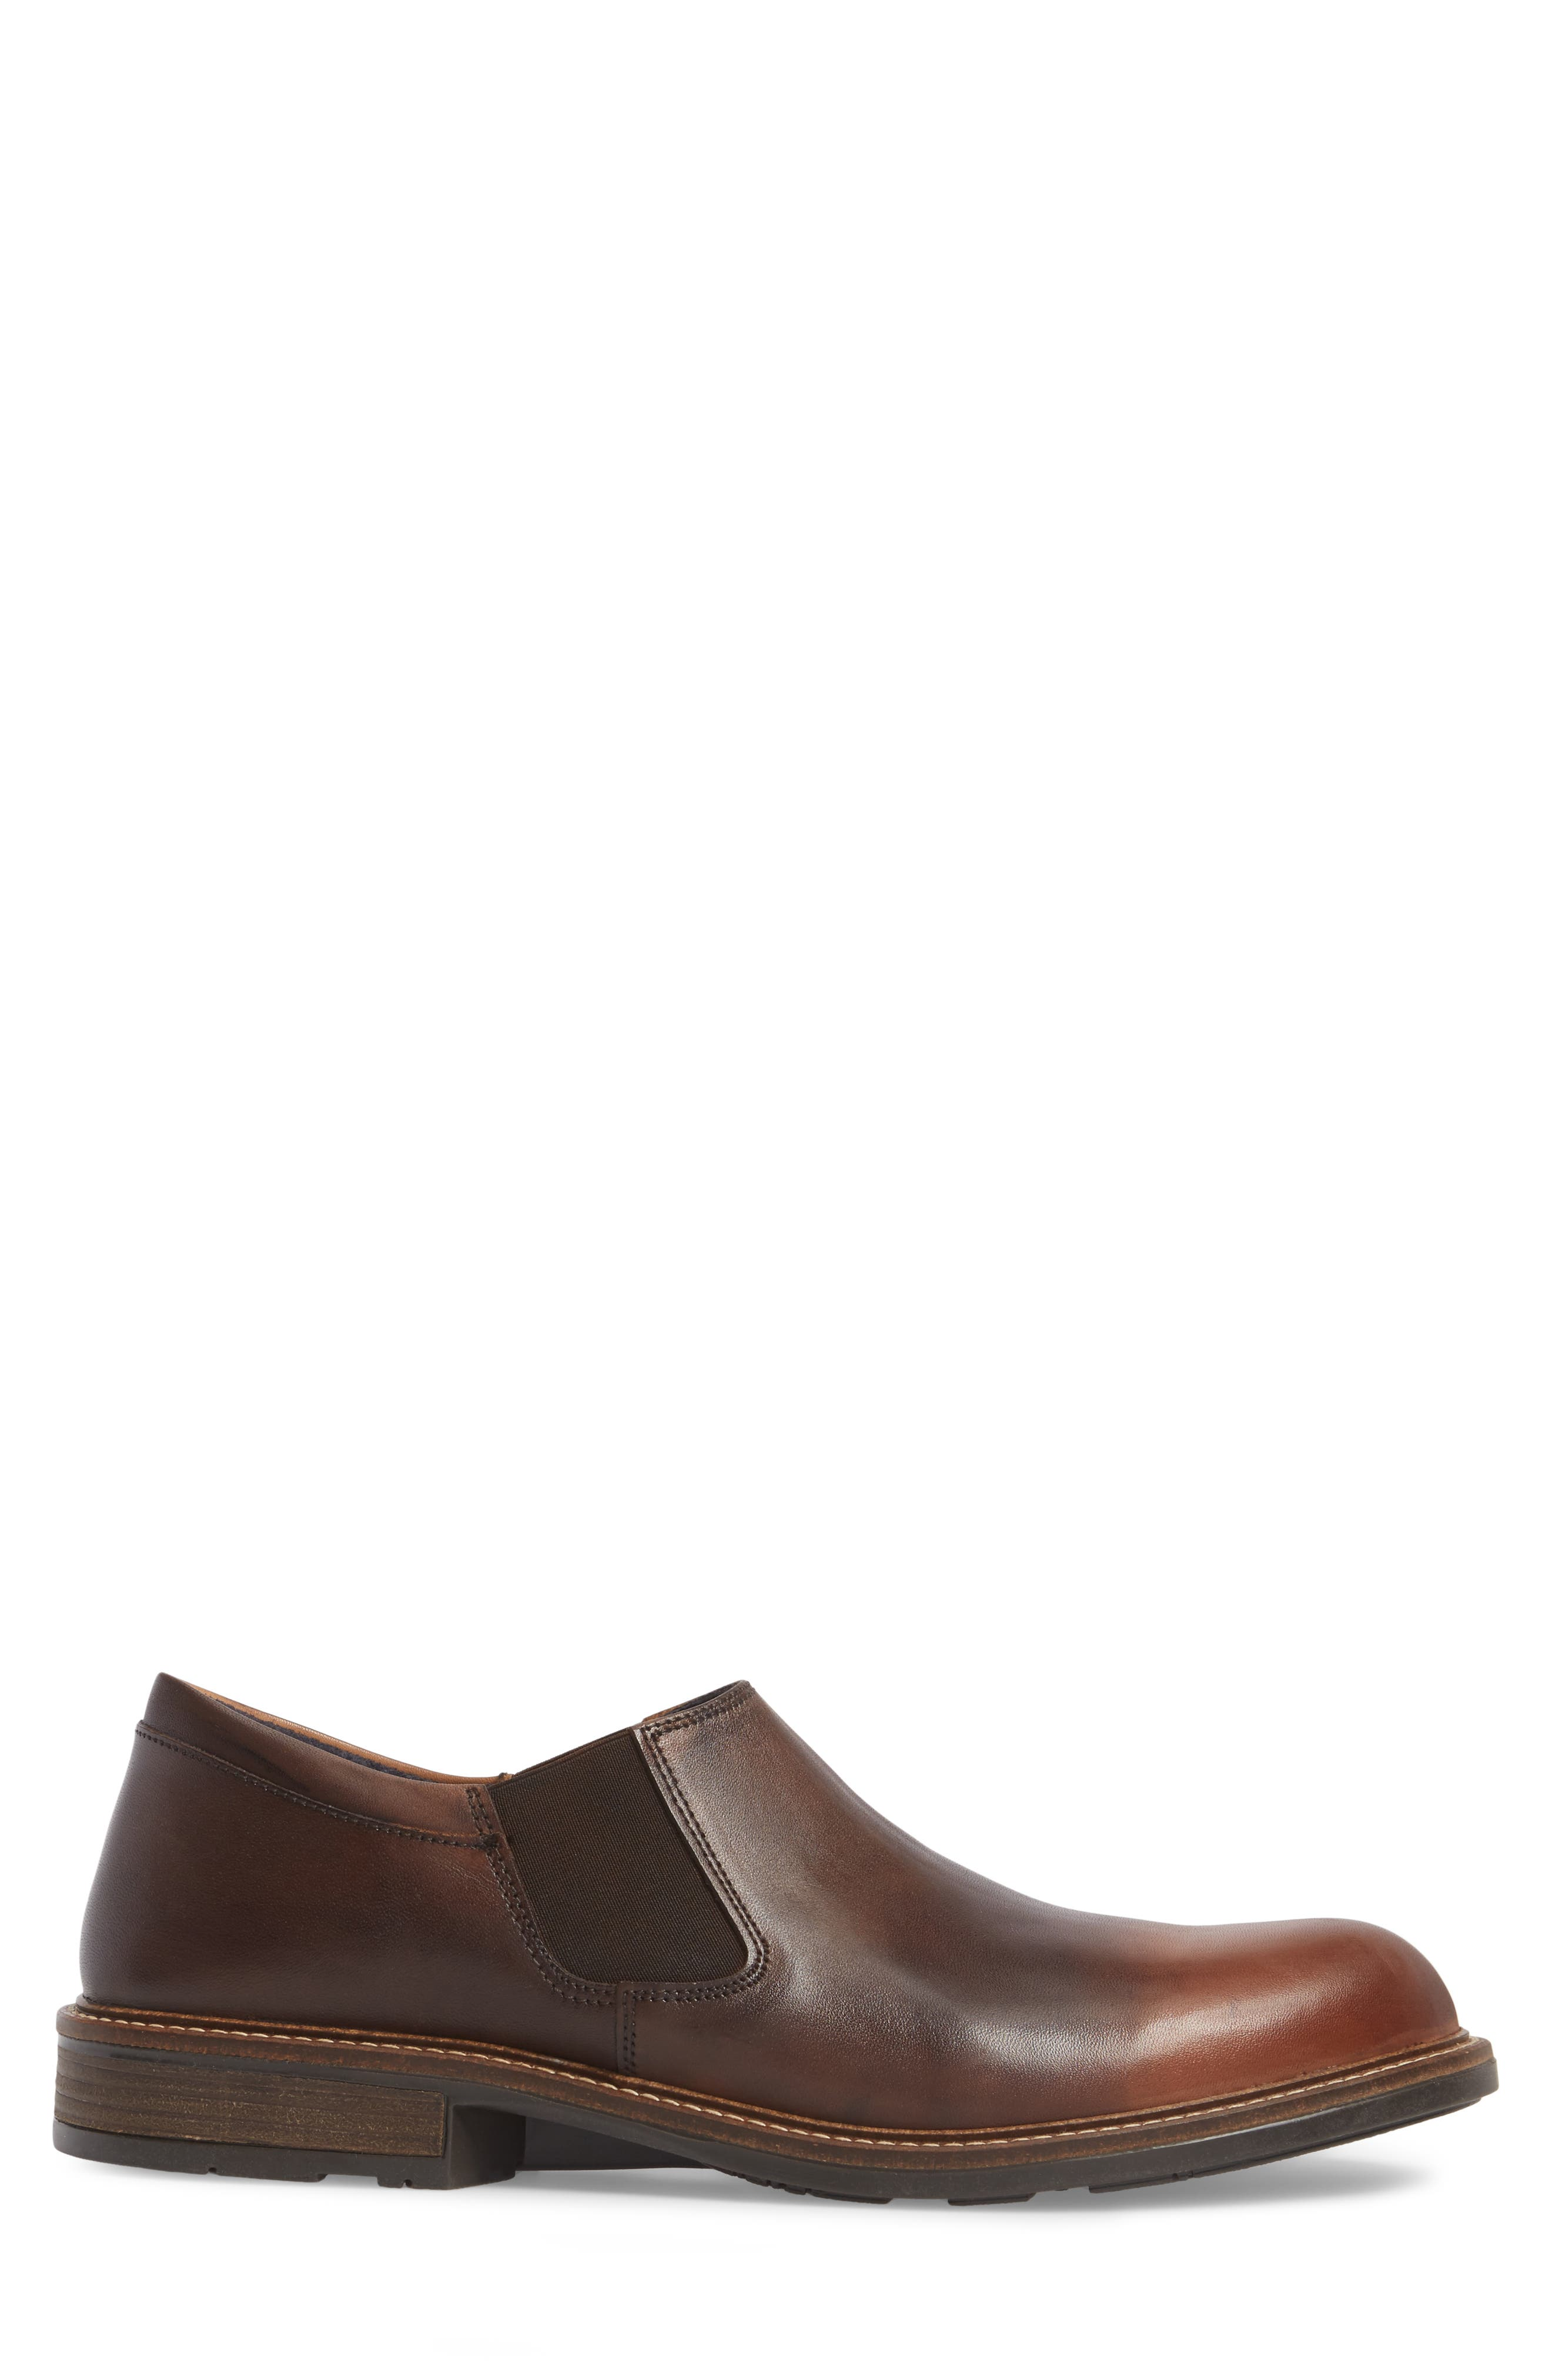 Director Venetian Loafer,                             Alternate thumbnail 3, color,                             BROWN GRADIENT LEATHER